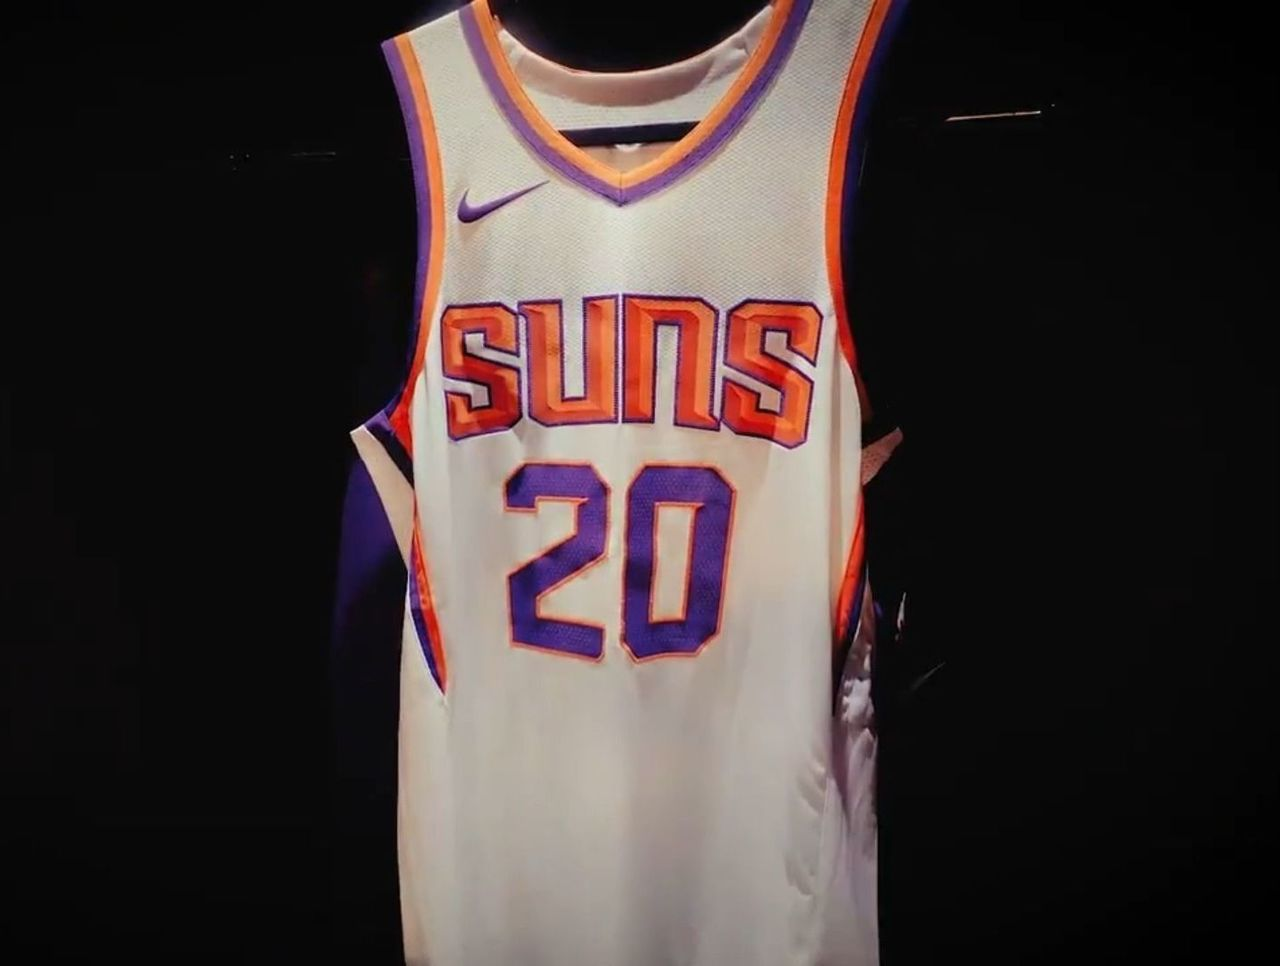 c9e8d10f9 Look  Suns show off new Nike uniforms